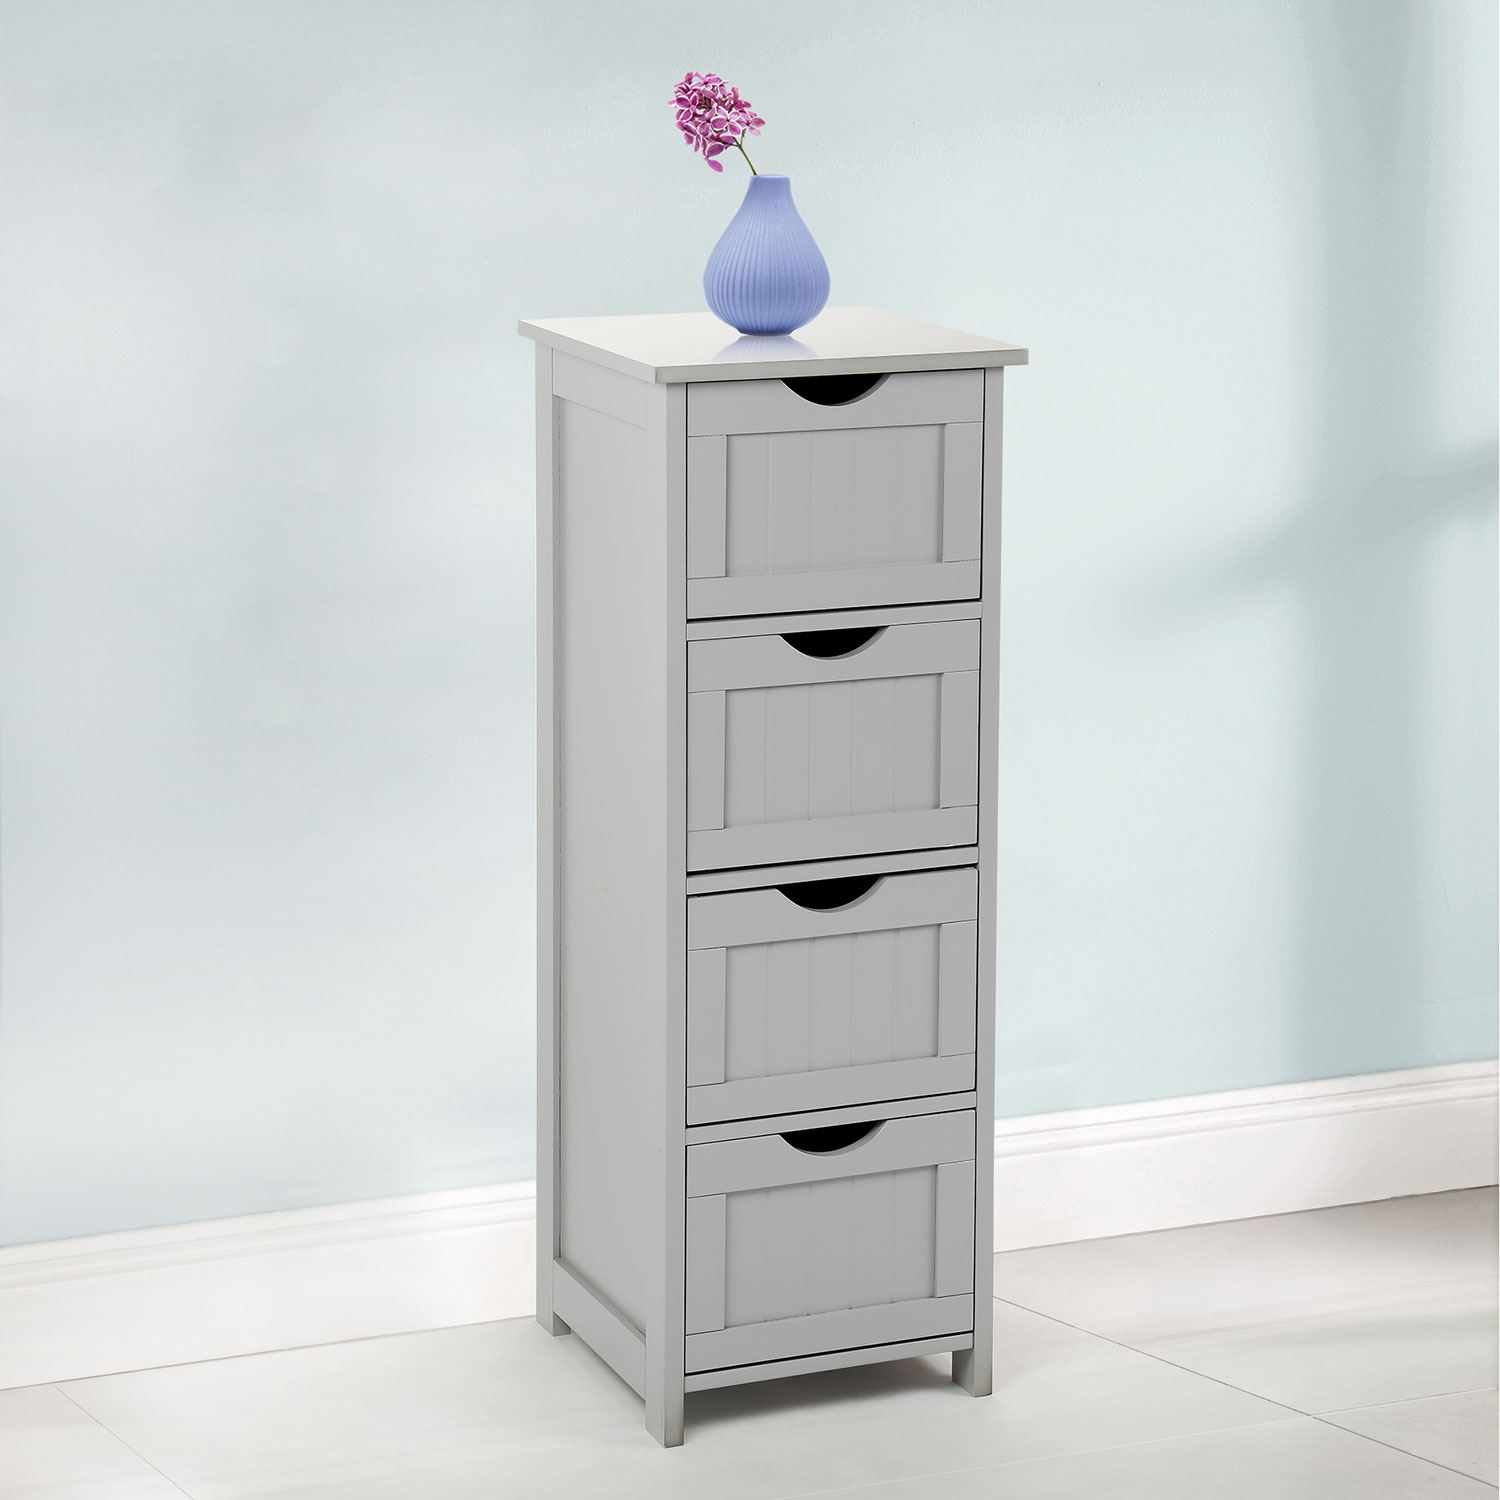 Cool Tall Bathroom Storage Drawers Caddy Baskets Mounted in sizing 1500 X 1500